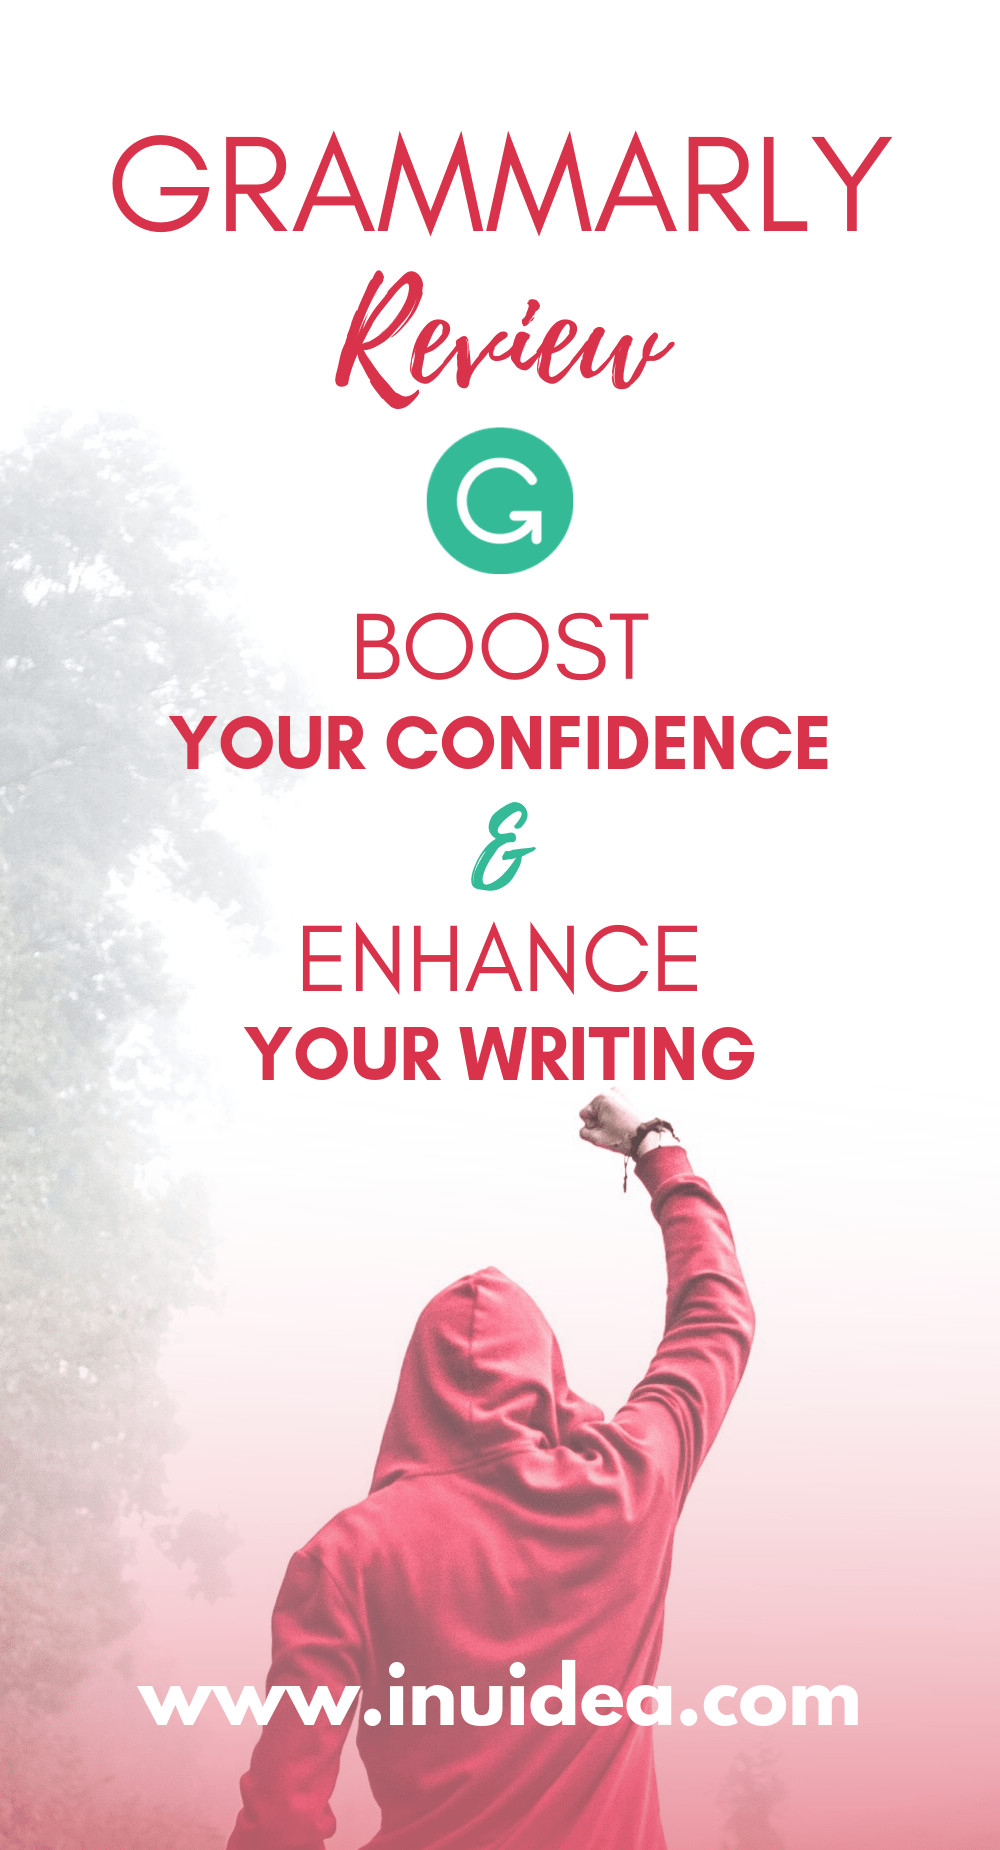 Grammarly Proofreading Software Tutorial Video